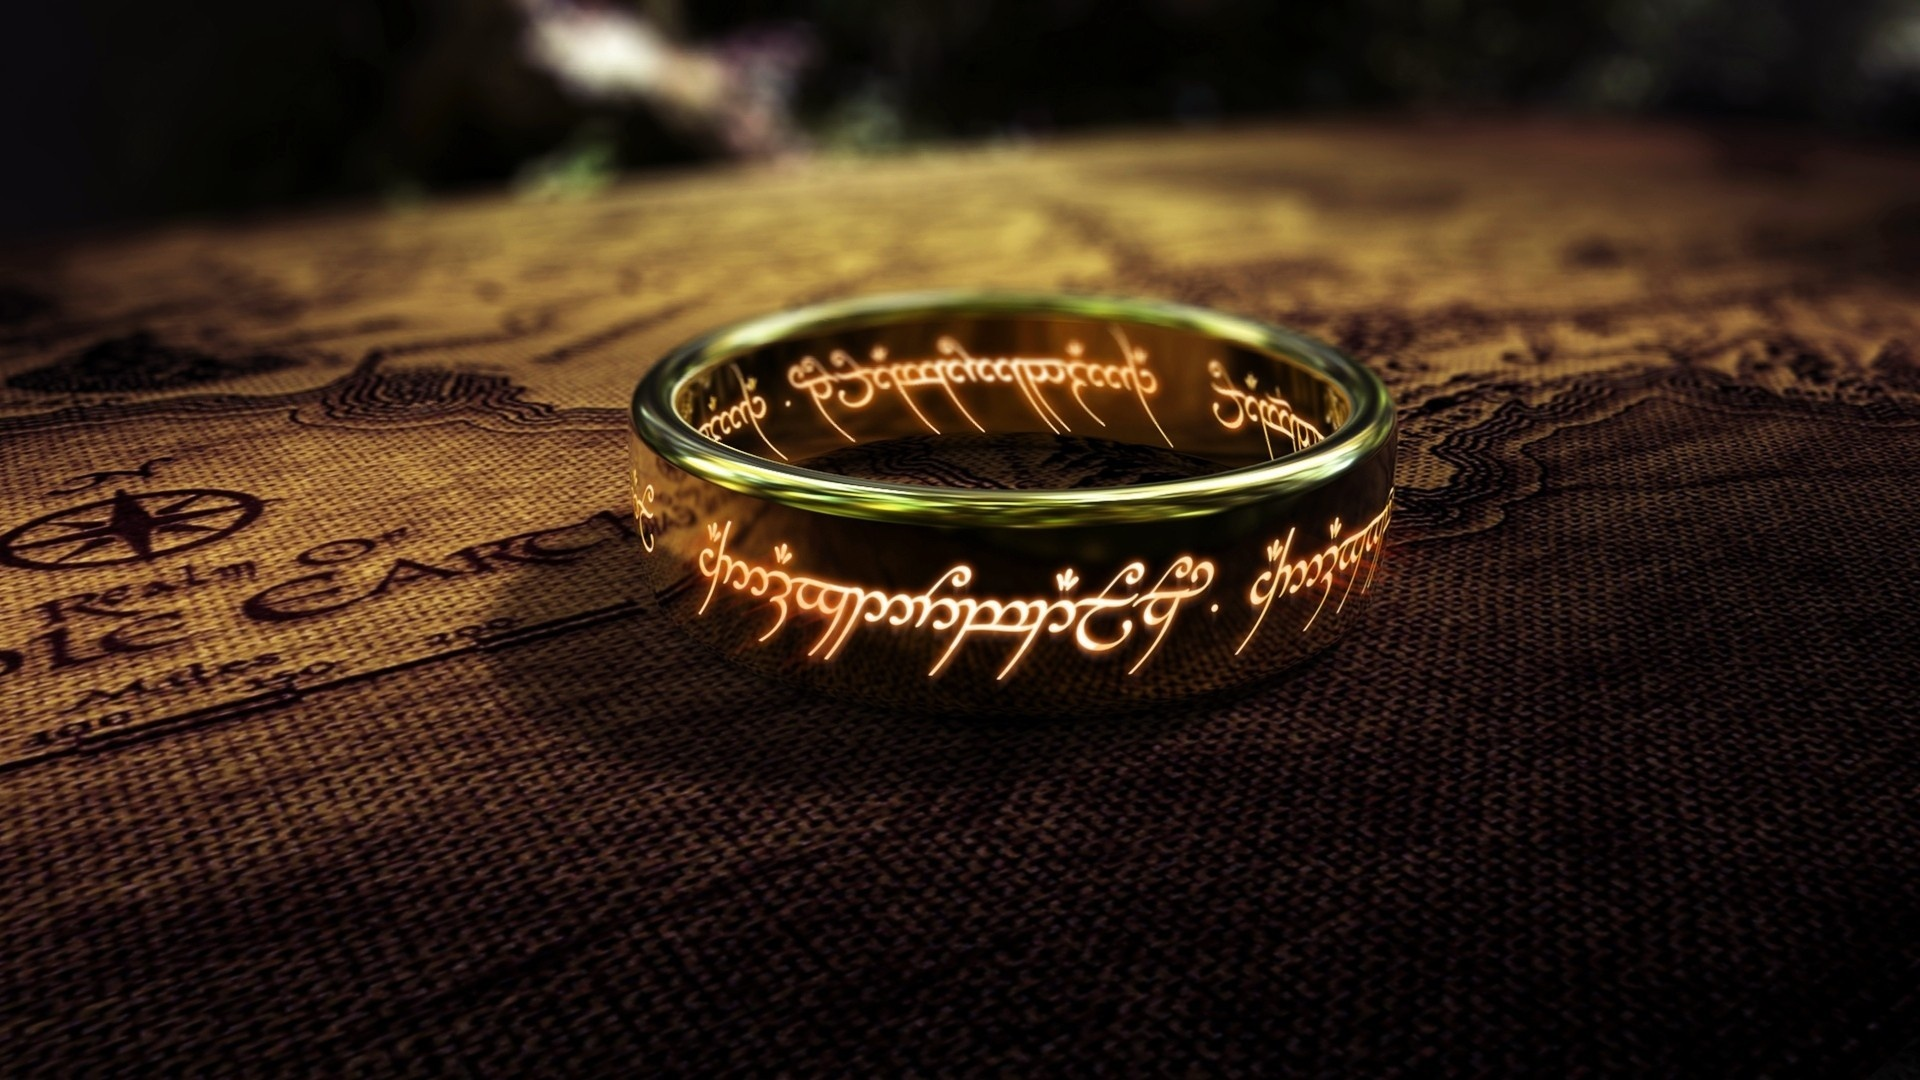 Lord-of-the-Rings-one-of-the-ring-close-up_1920x1080